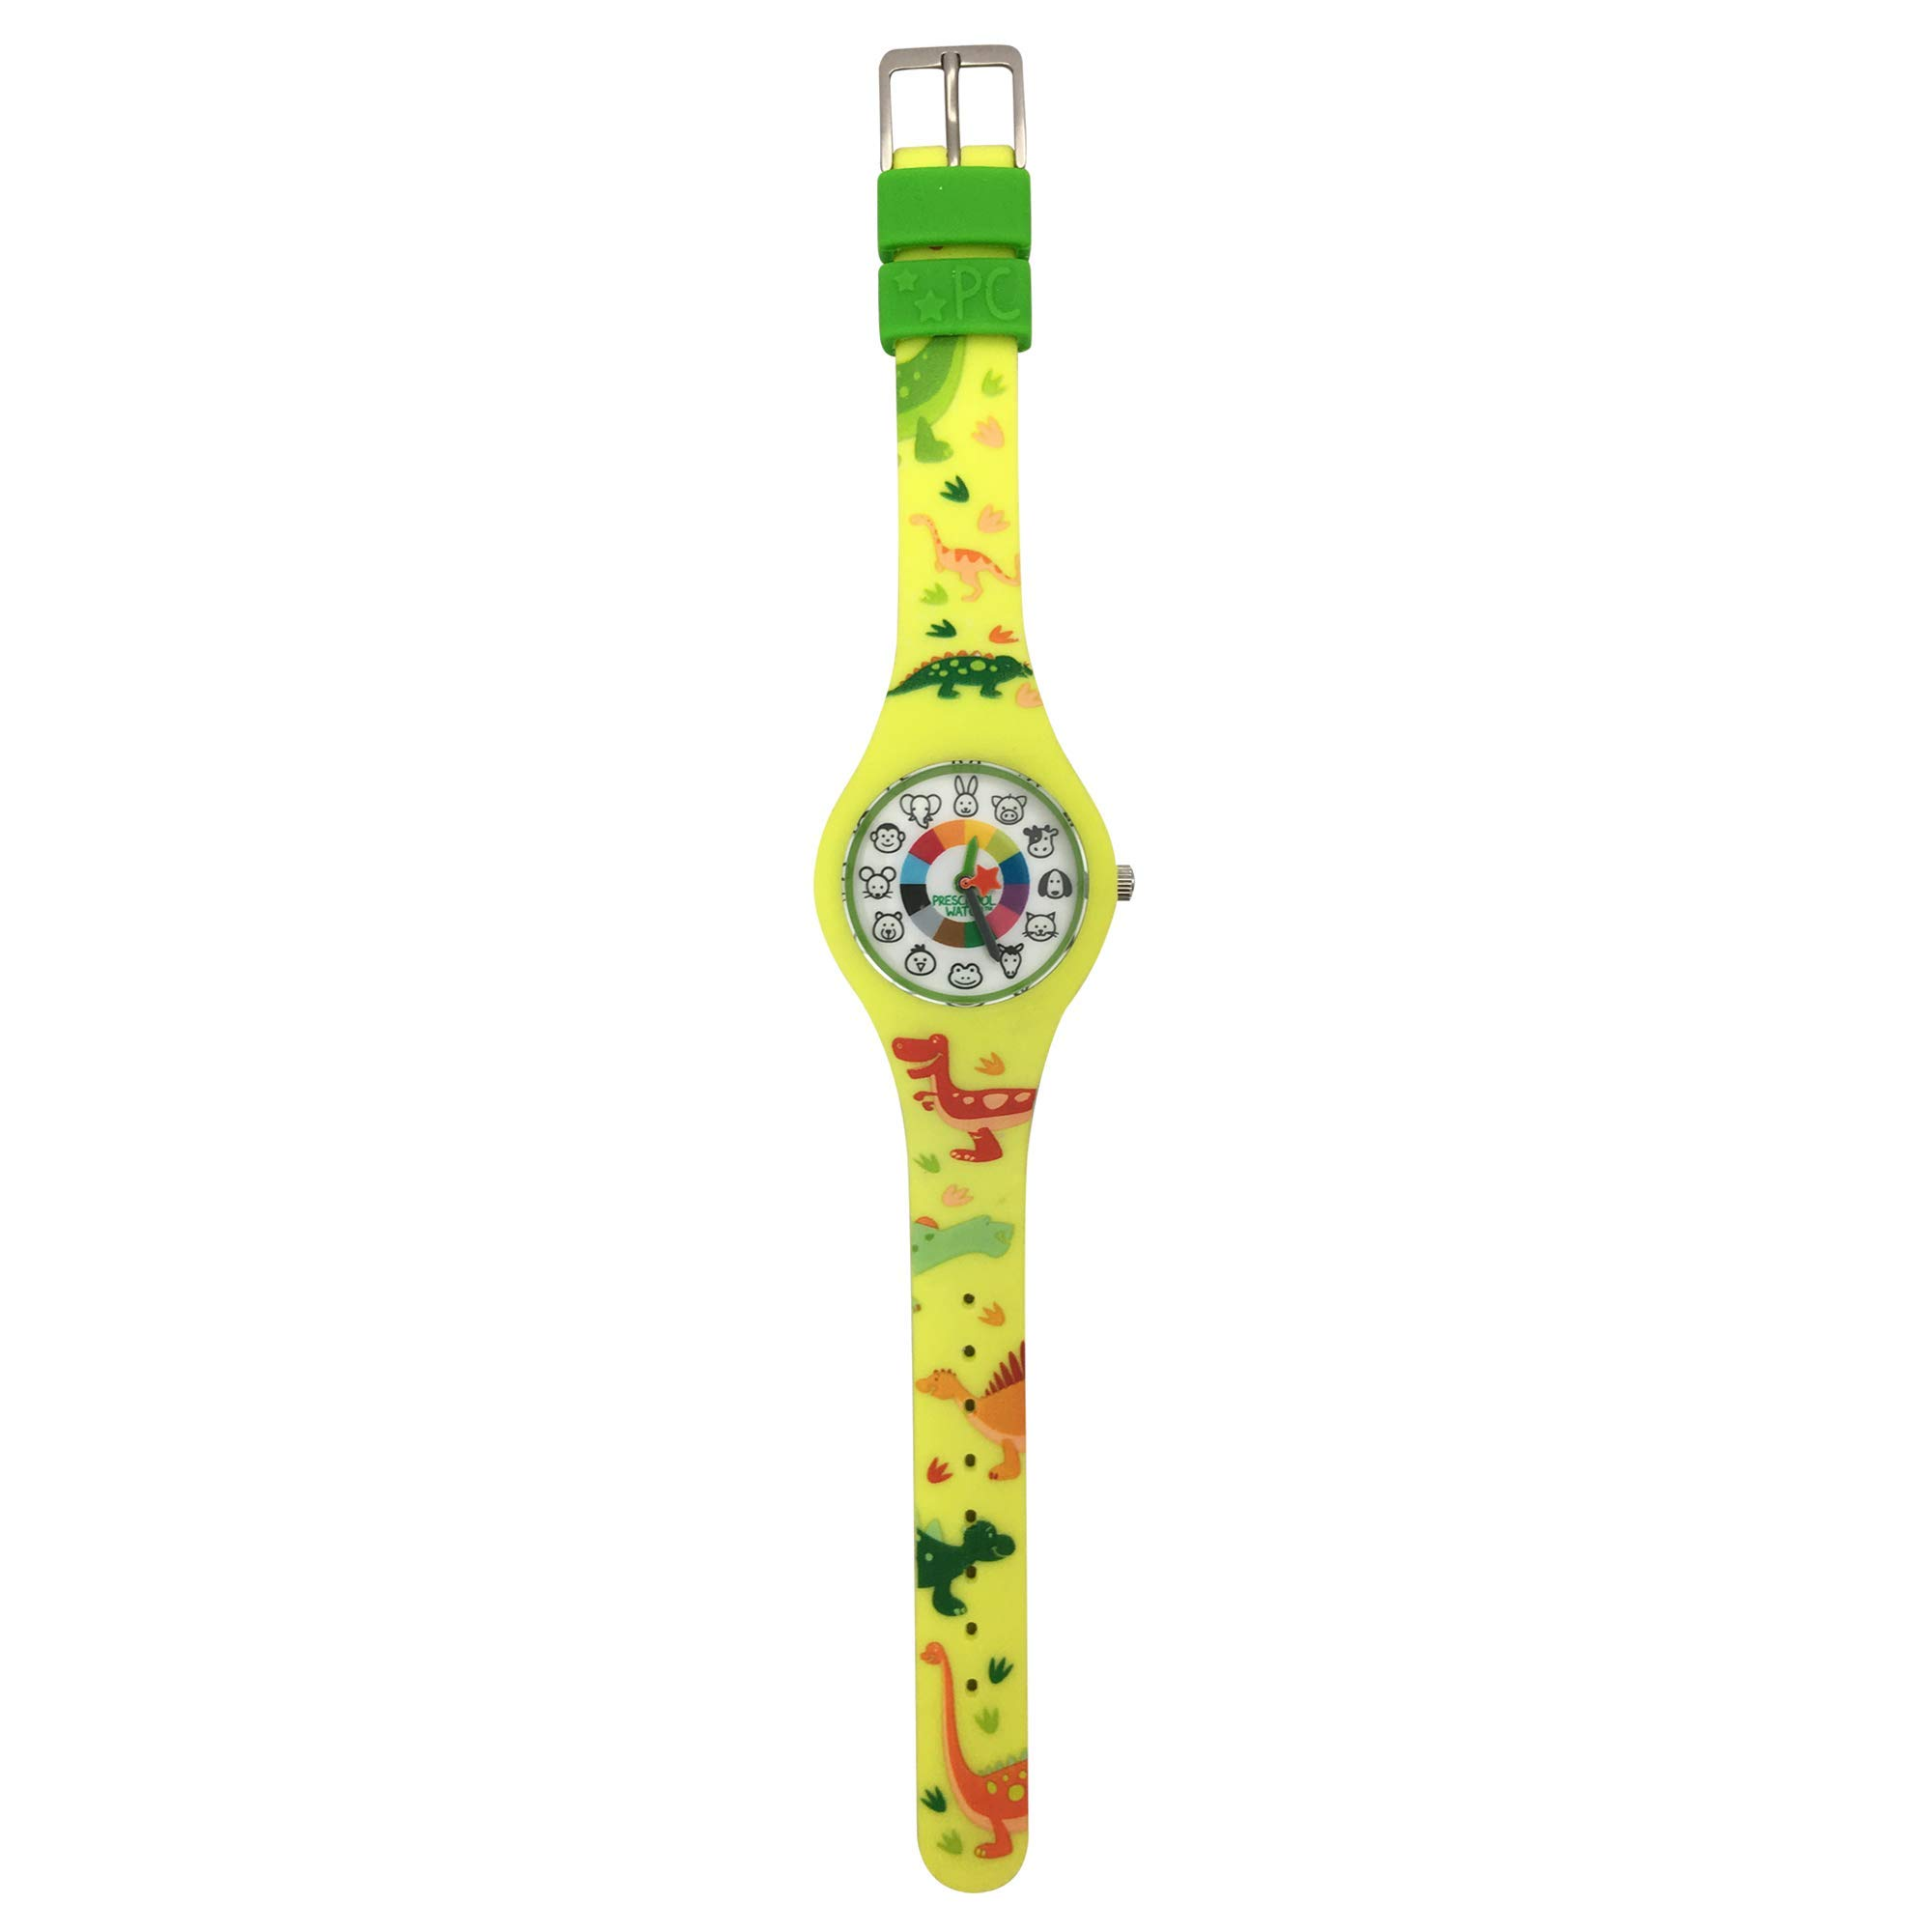 Dinosaur Preschool Watch - The Only Analog Kids Watch Preschoolers Understand! Quality Teaching time Silicone Watch with Glow-in-The-Dark Dial & Japan Movement by PRESCHOOL COLLECTION (Image #3)